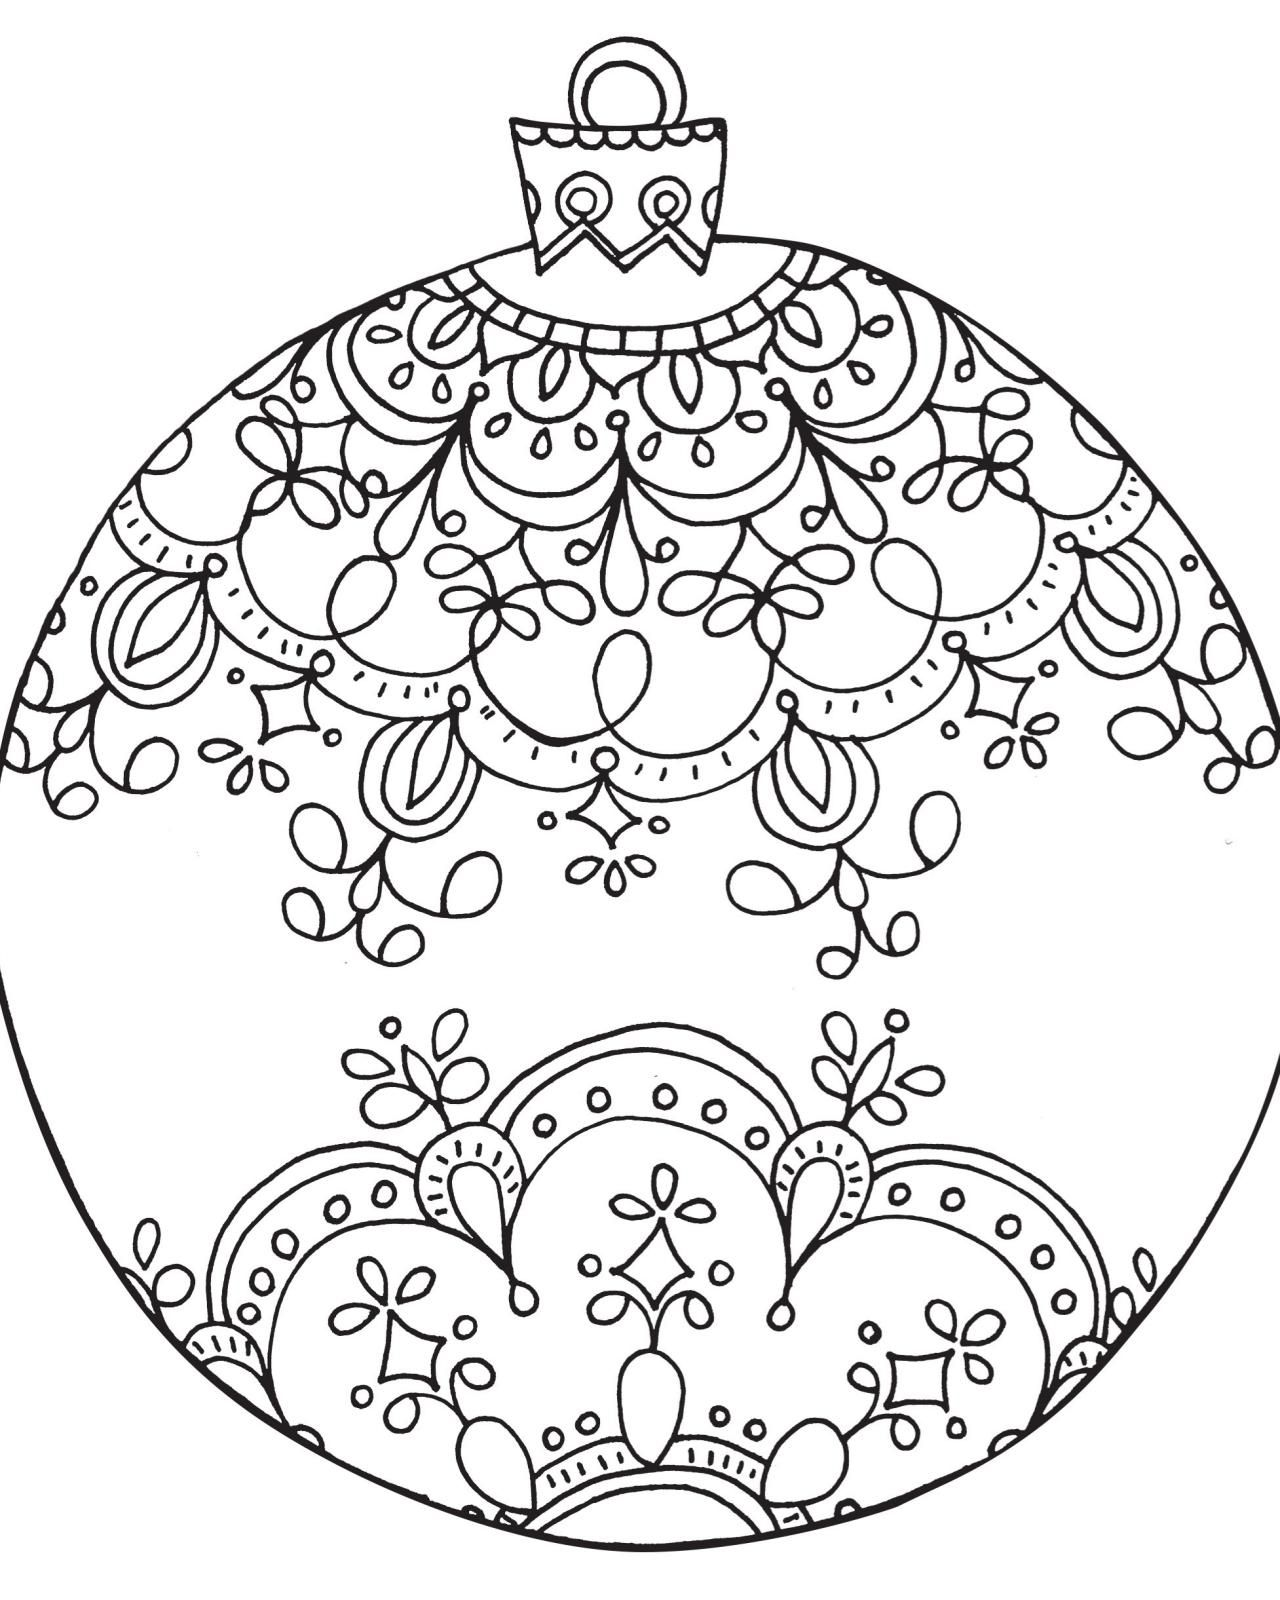 Christmas Colouring Pages Baubles With Free Printable Coloring For Adults Mandala